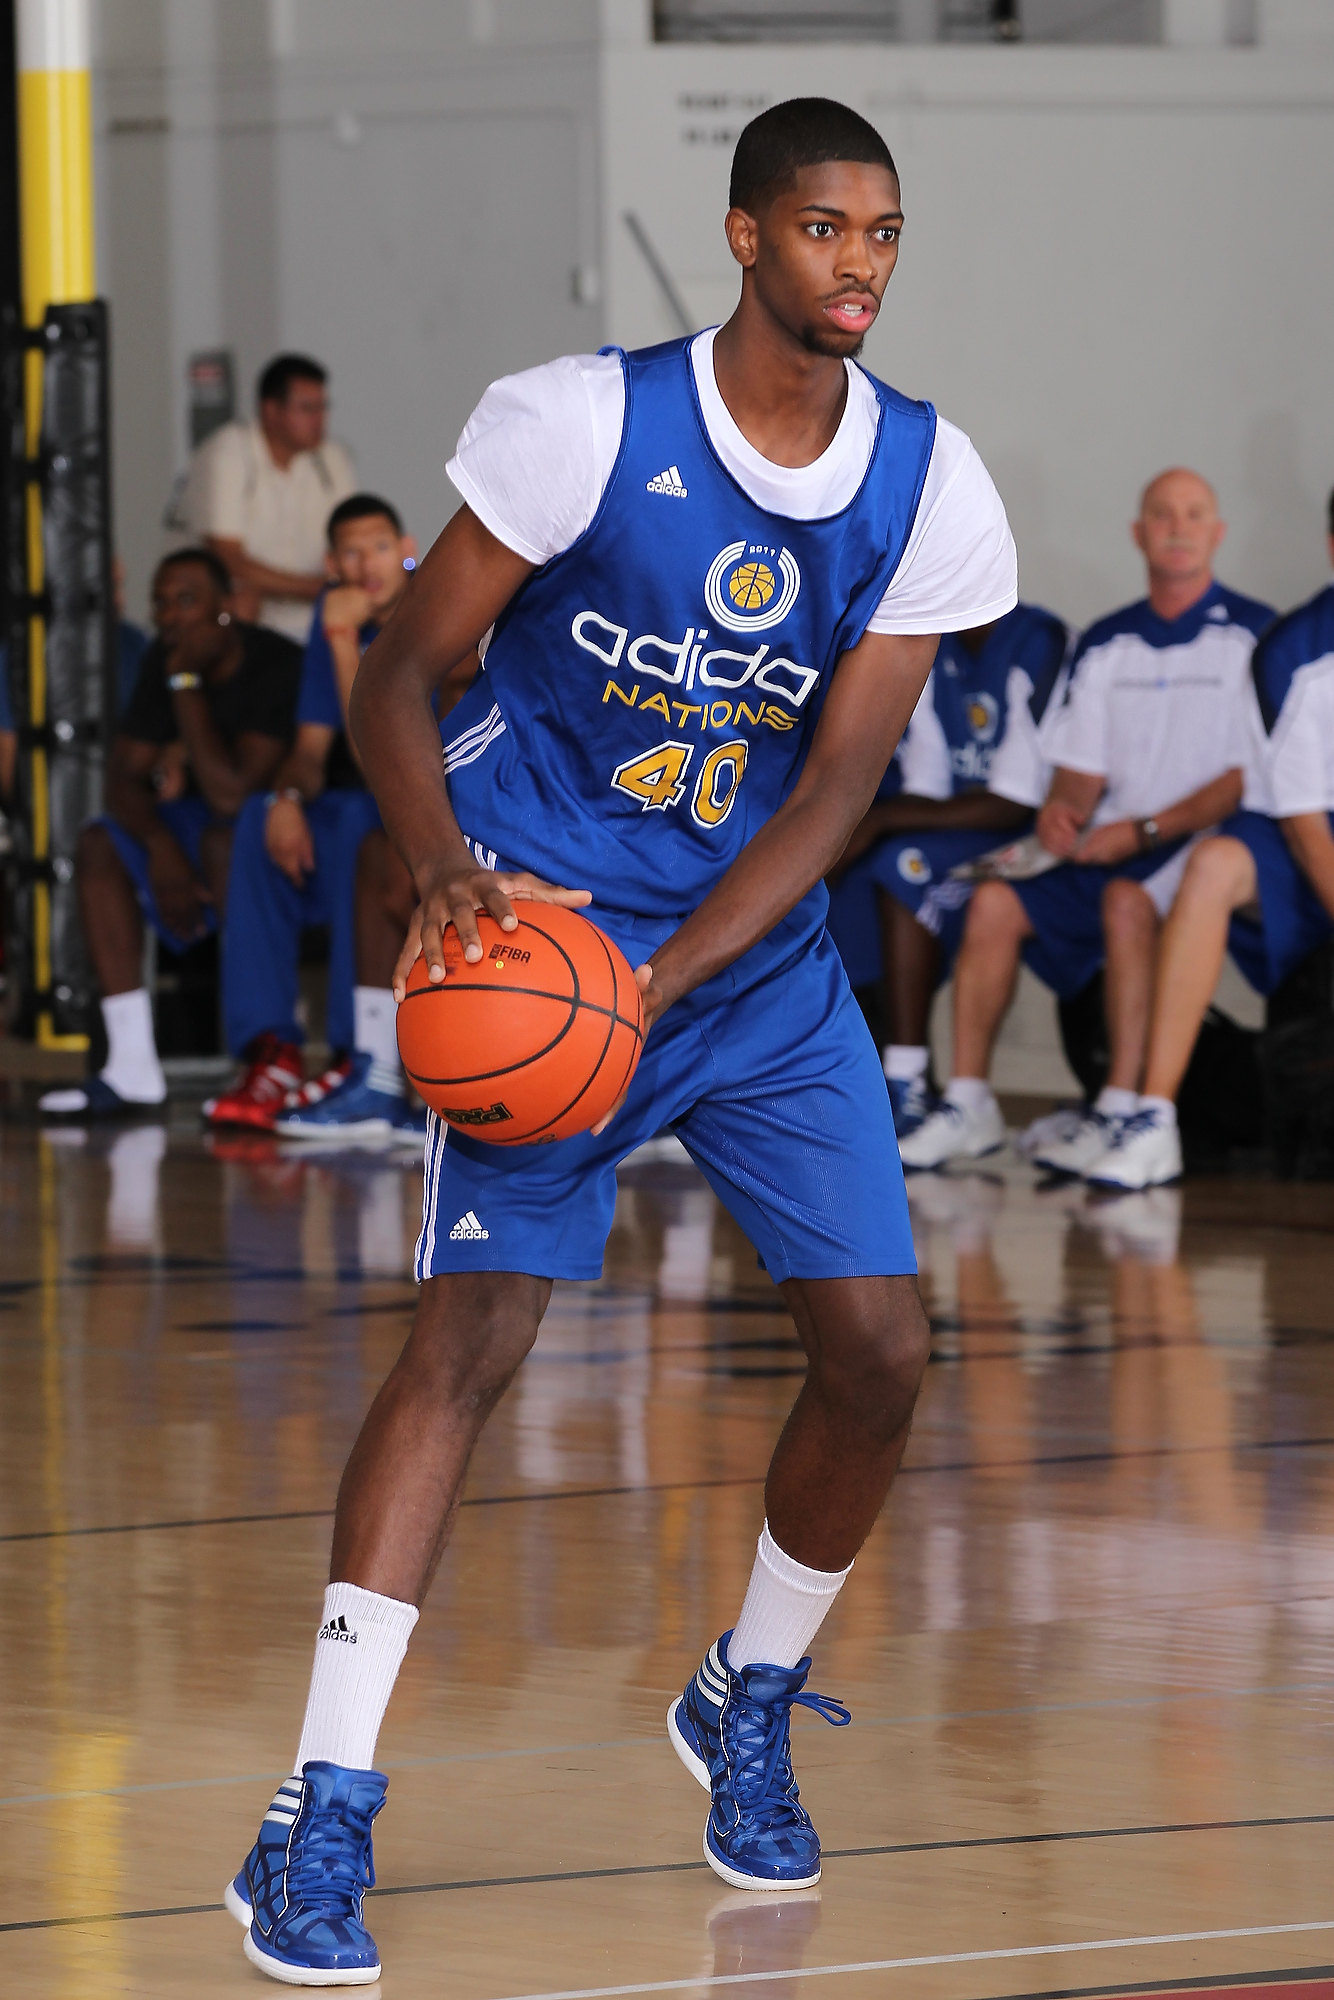 Amile Jefferson, Photo Courtesy of Getty/Adidas